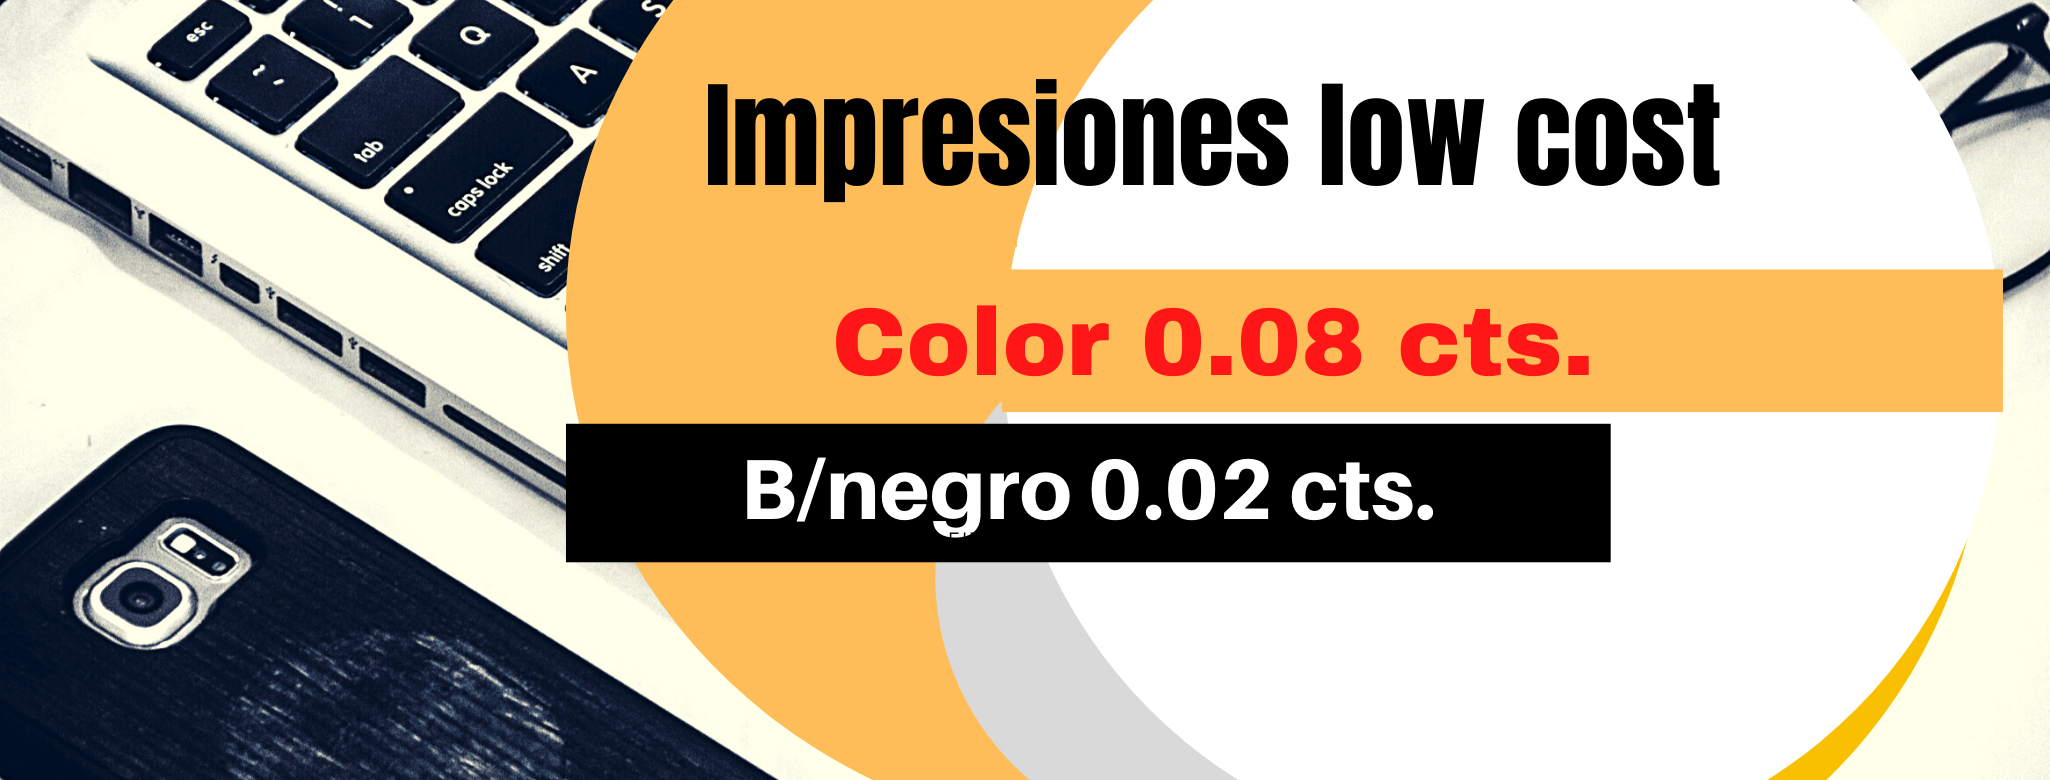 impresiones low cost